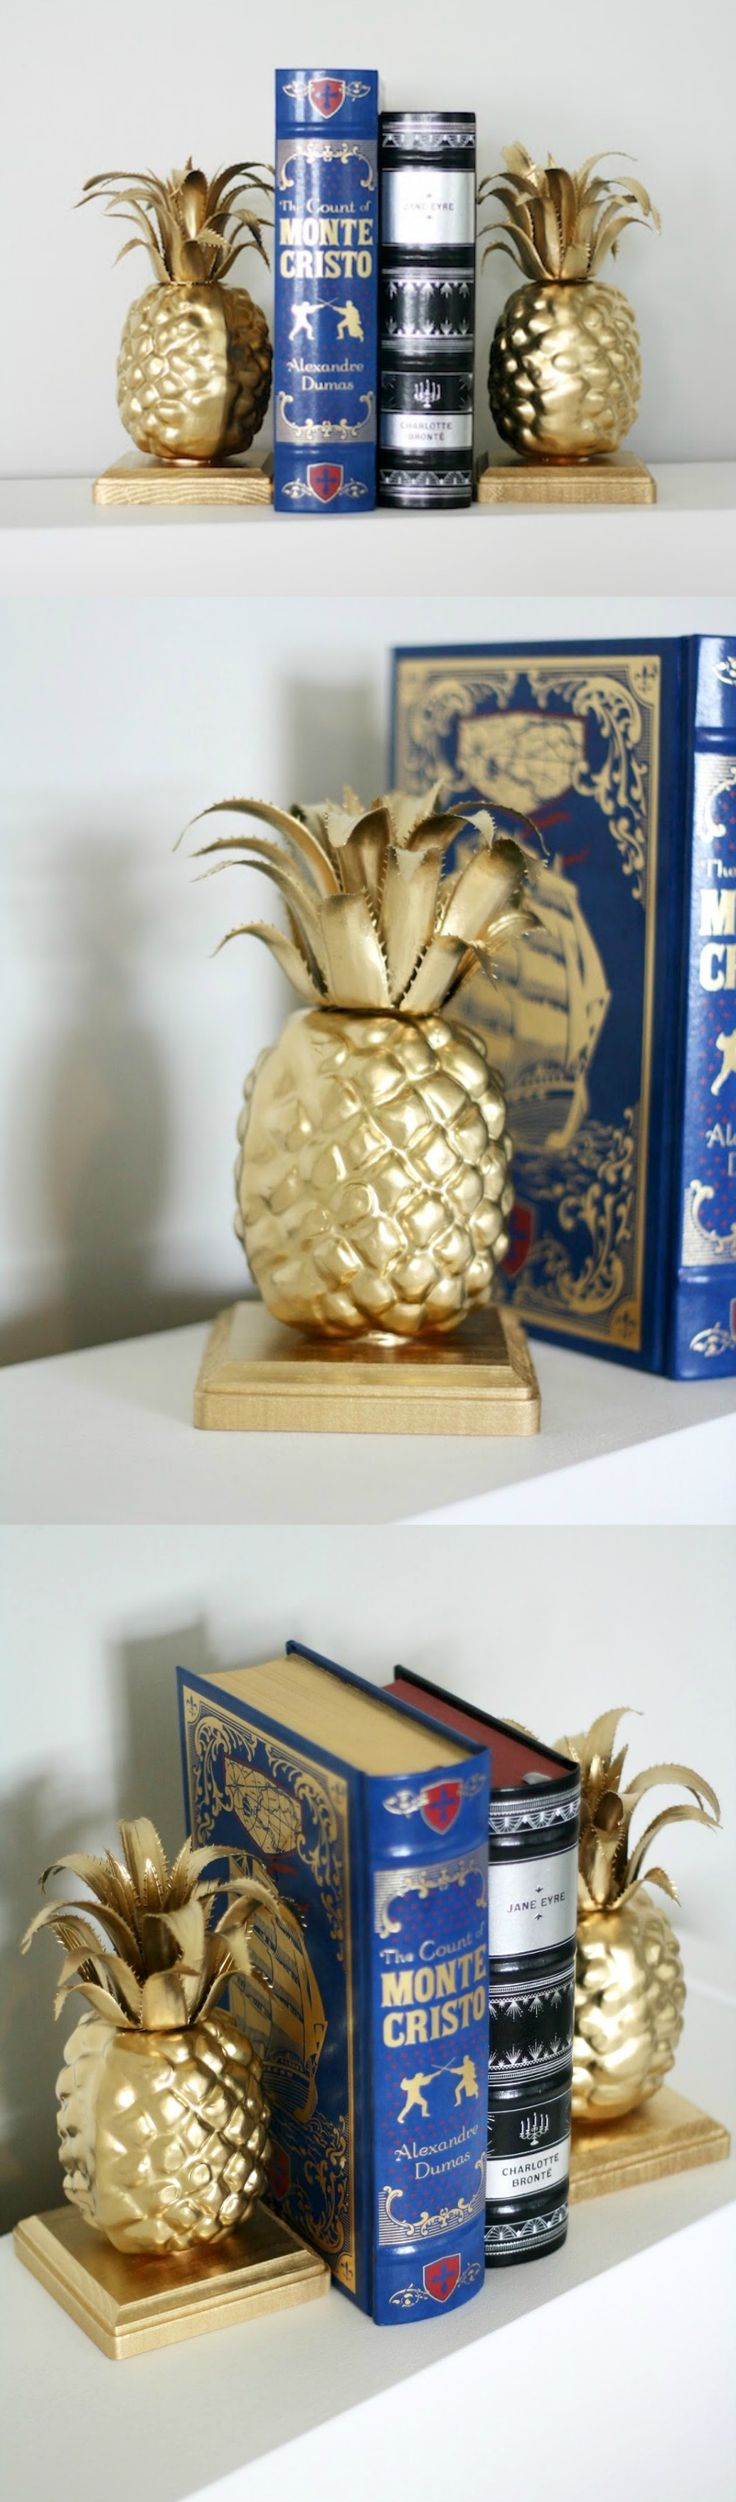 Learn how to make these simple, custom pineapple DIY bookends in just a few steps! The supplies are also very budget friendly. We love easy and cheap - don't you?